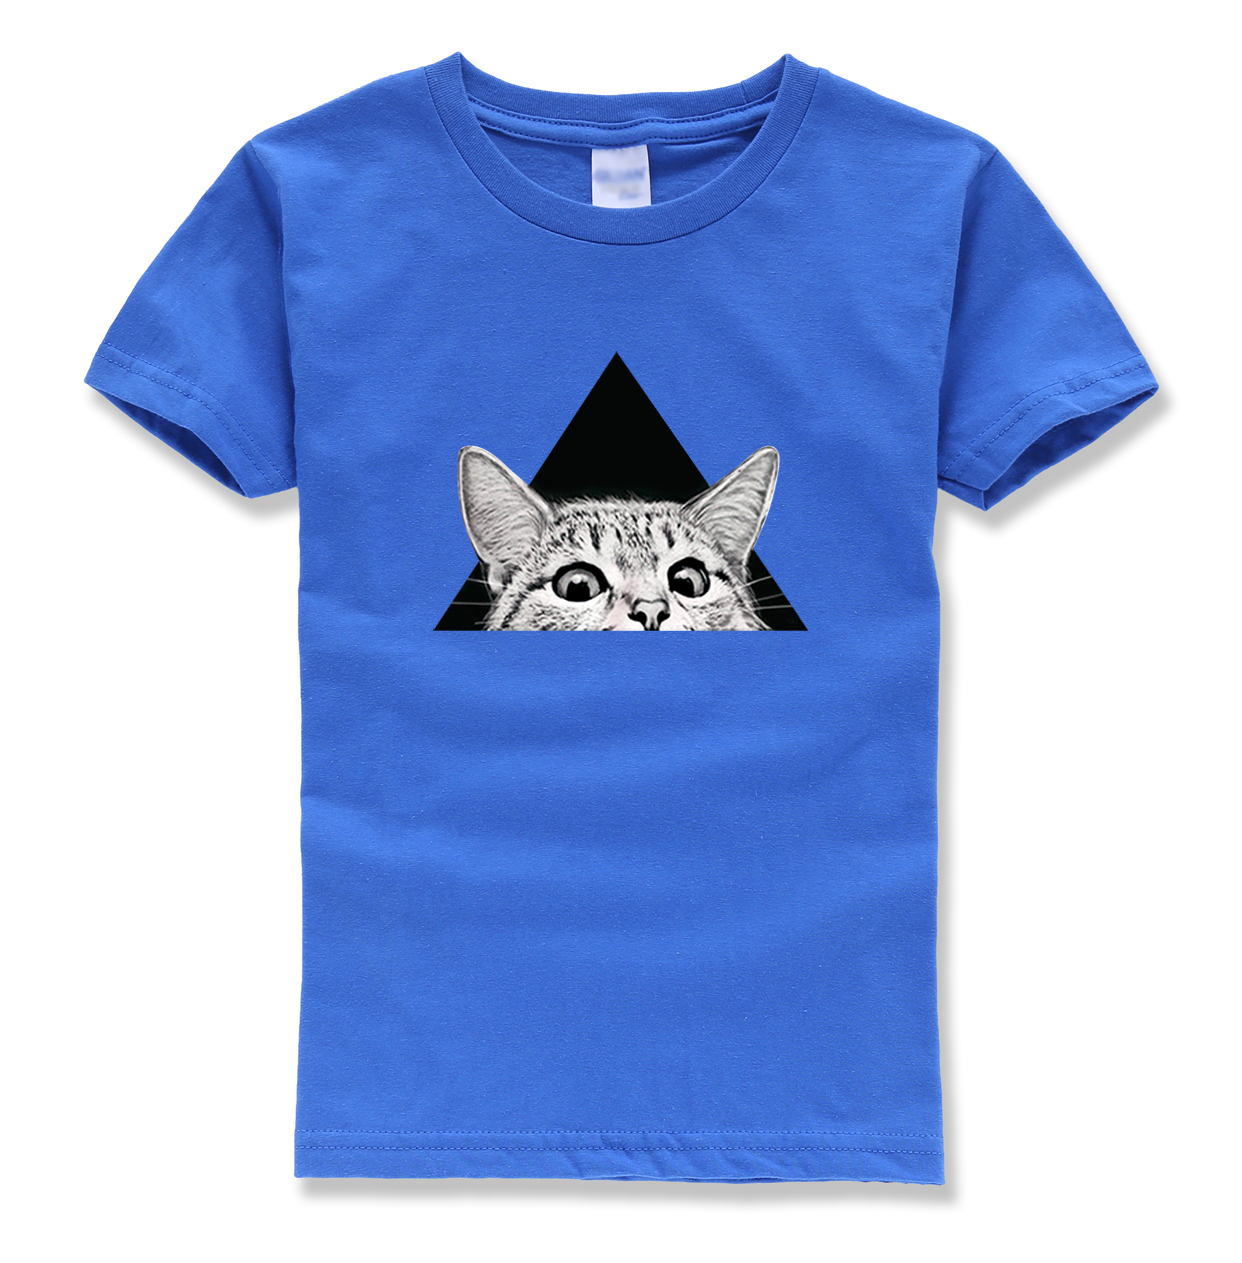 funny cat tops tee shirts summer brand clothing short sleeve 2018 new fashion kids o neck cotton t-shirts chikdren clothes mma fashion long sleeve o neck t shirt 2017 new arrival men t shirts tops tees men s cotton t shirts 3colors men t shirts m xxl